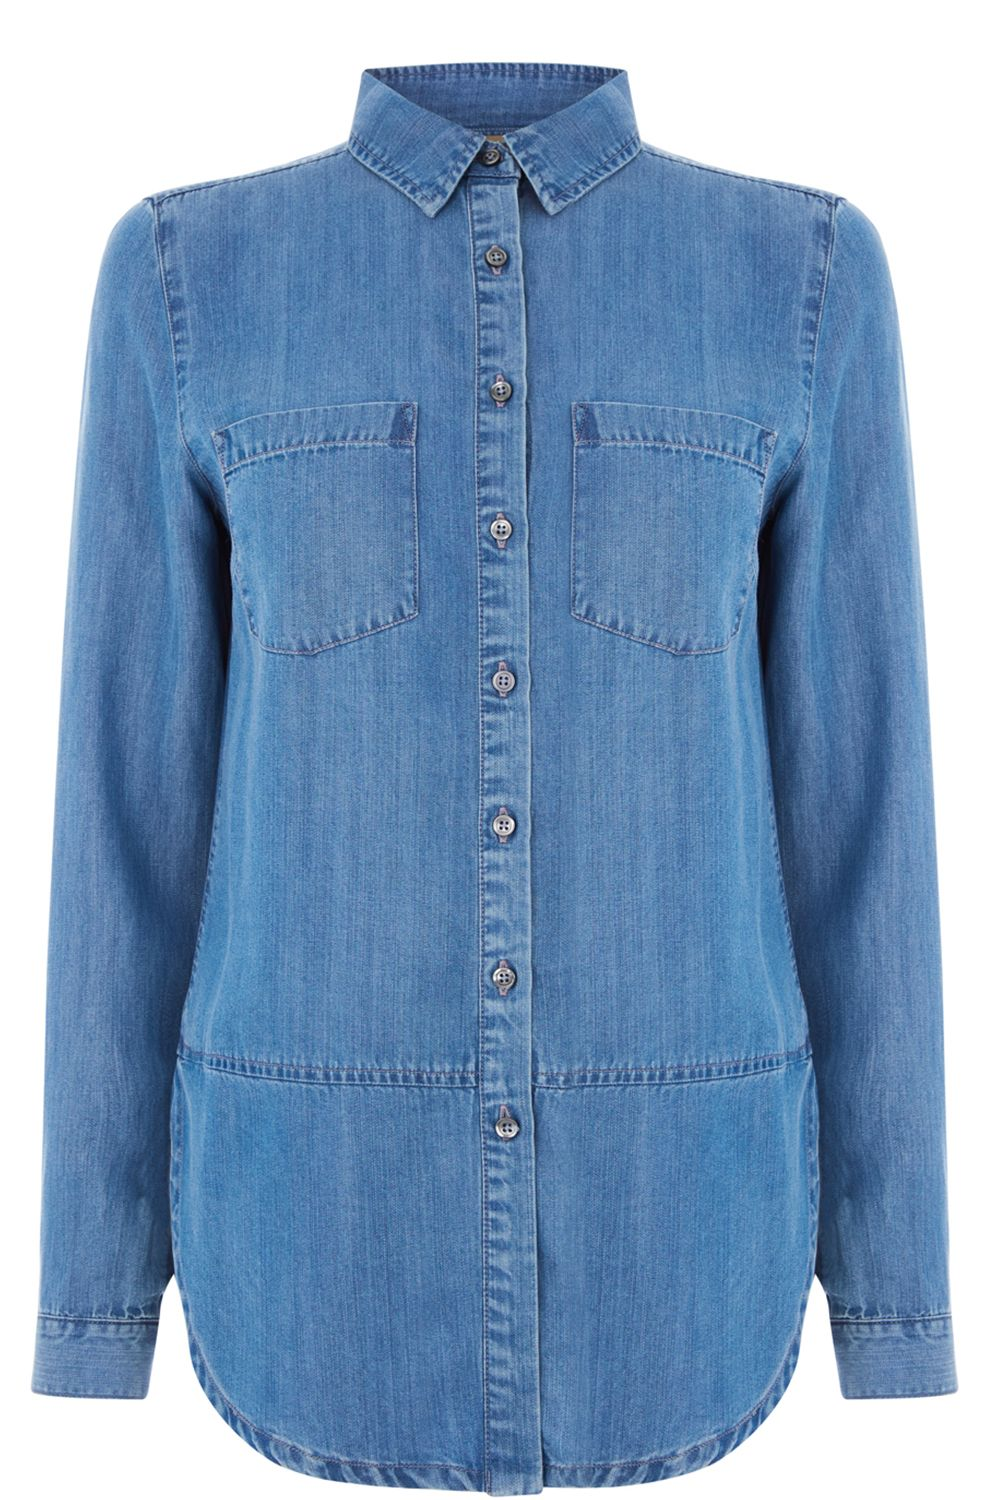 Oasis Georgie Denim Shirt, Denim